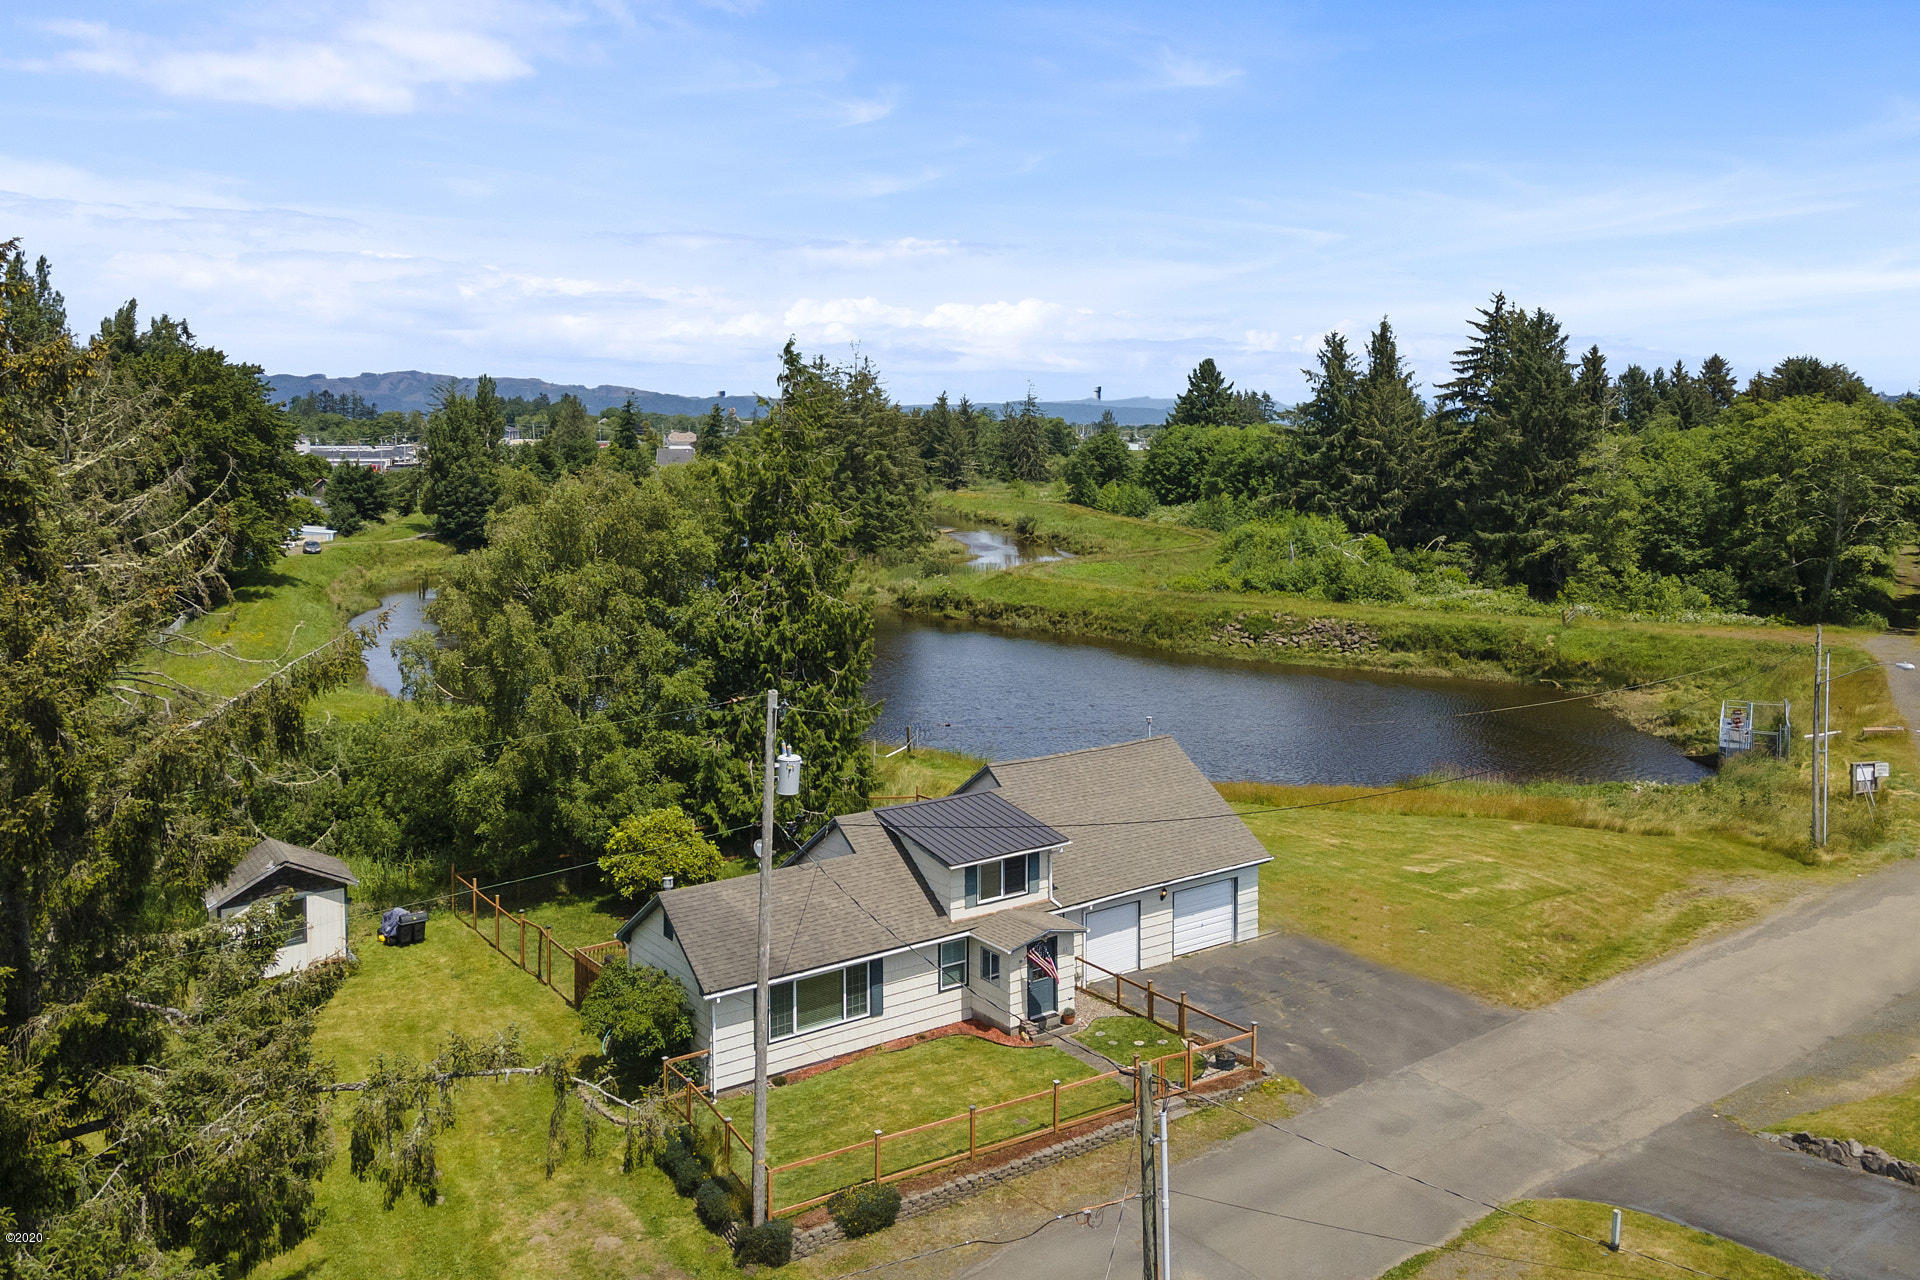 65 SE 8th Street, Warrenton, OR 97146 - DJI_0001